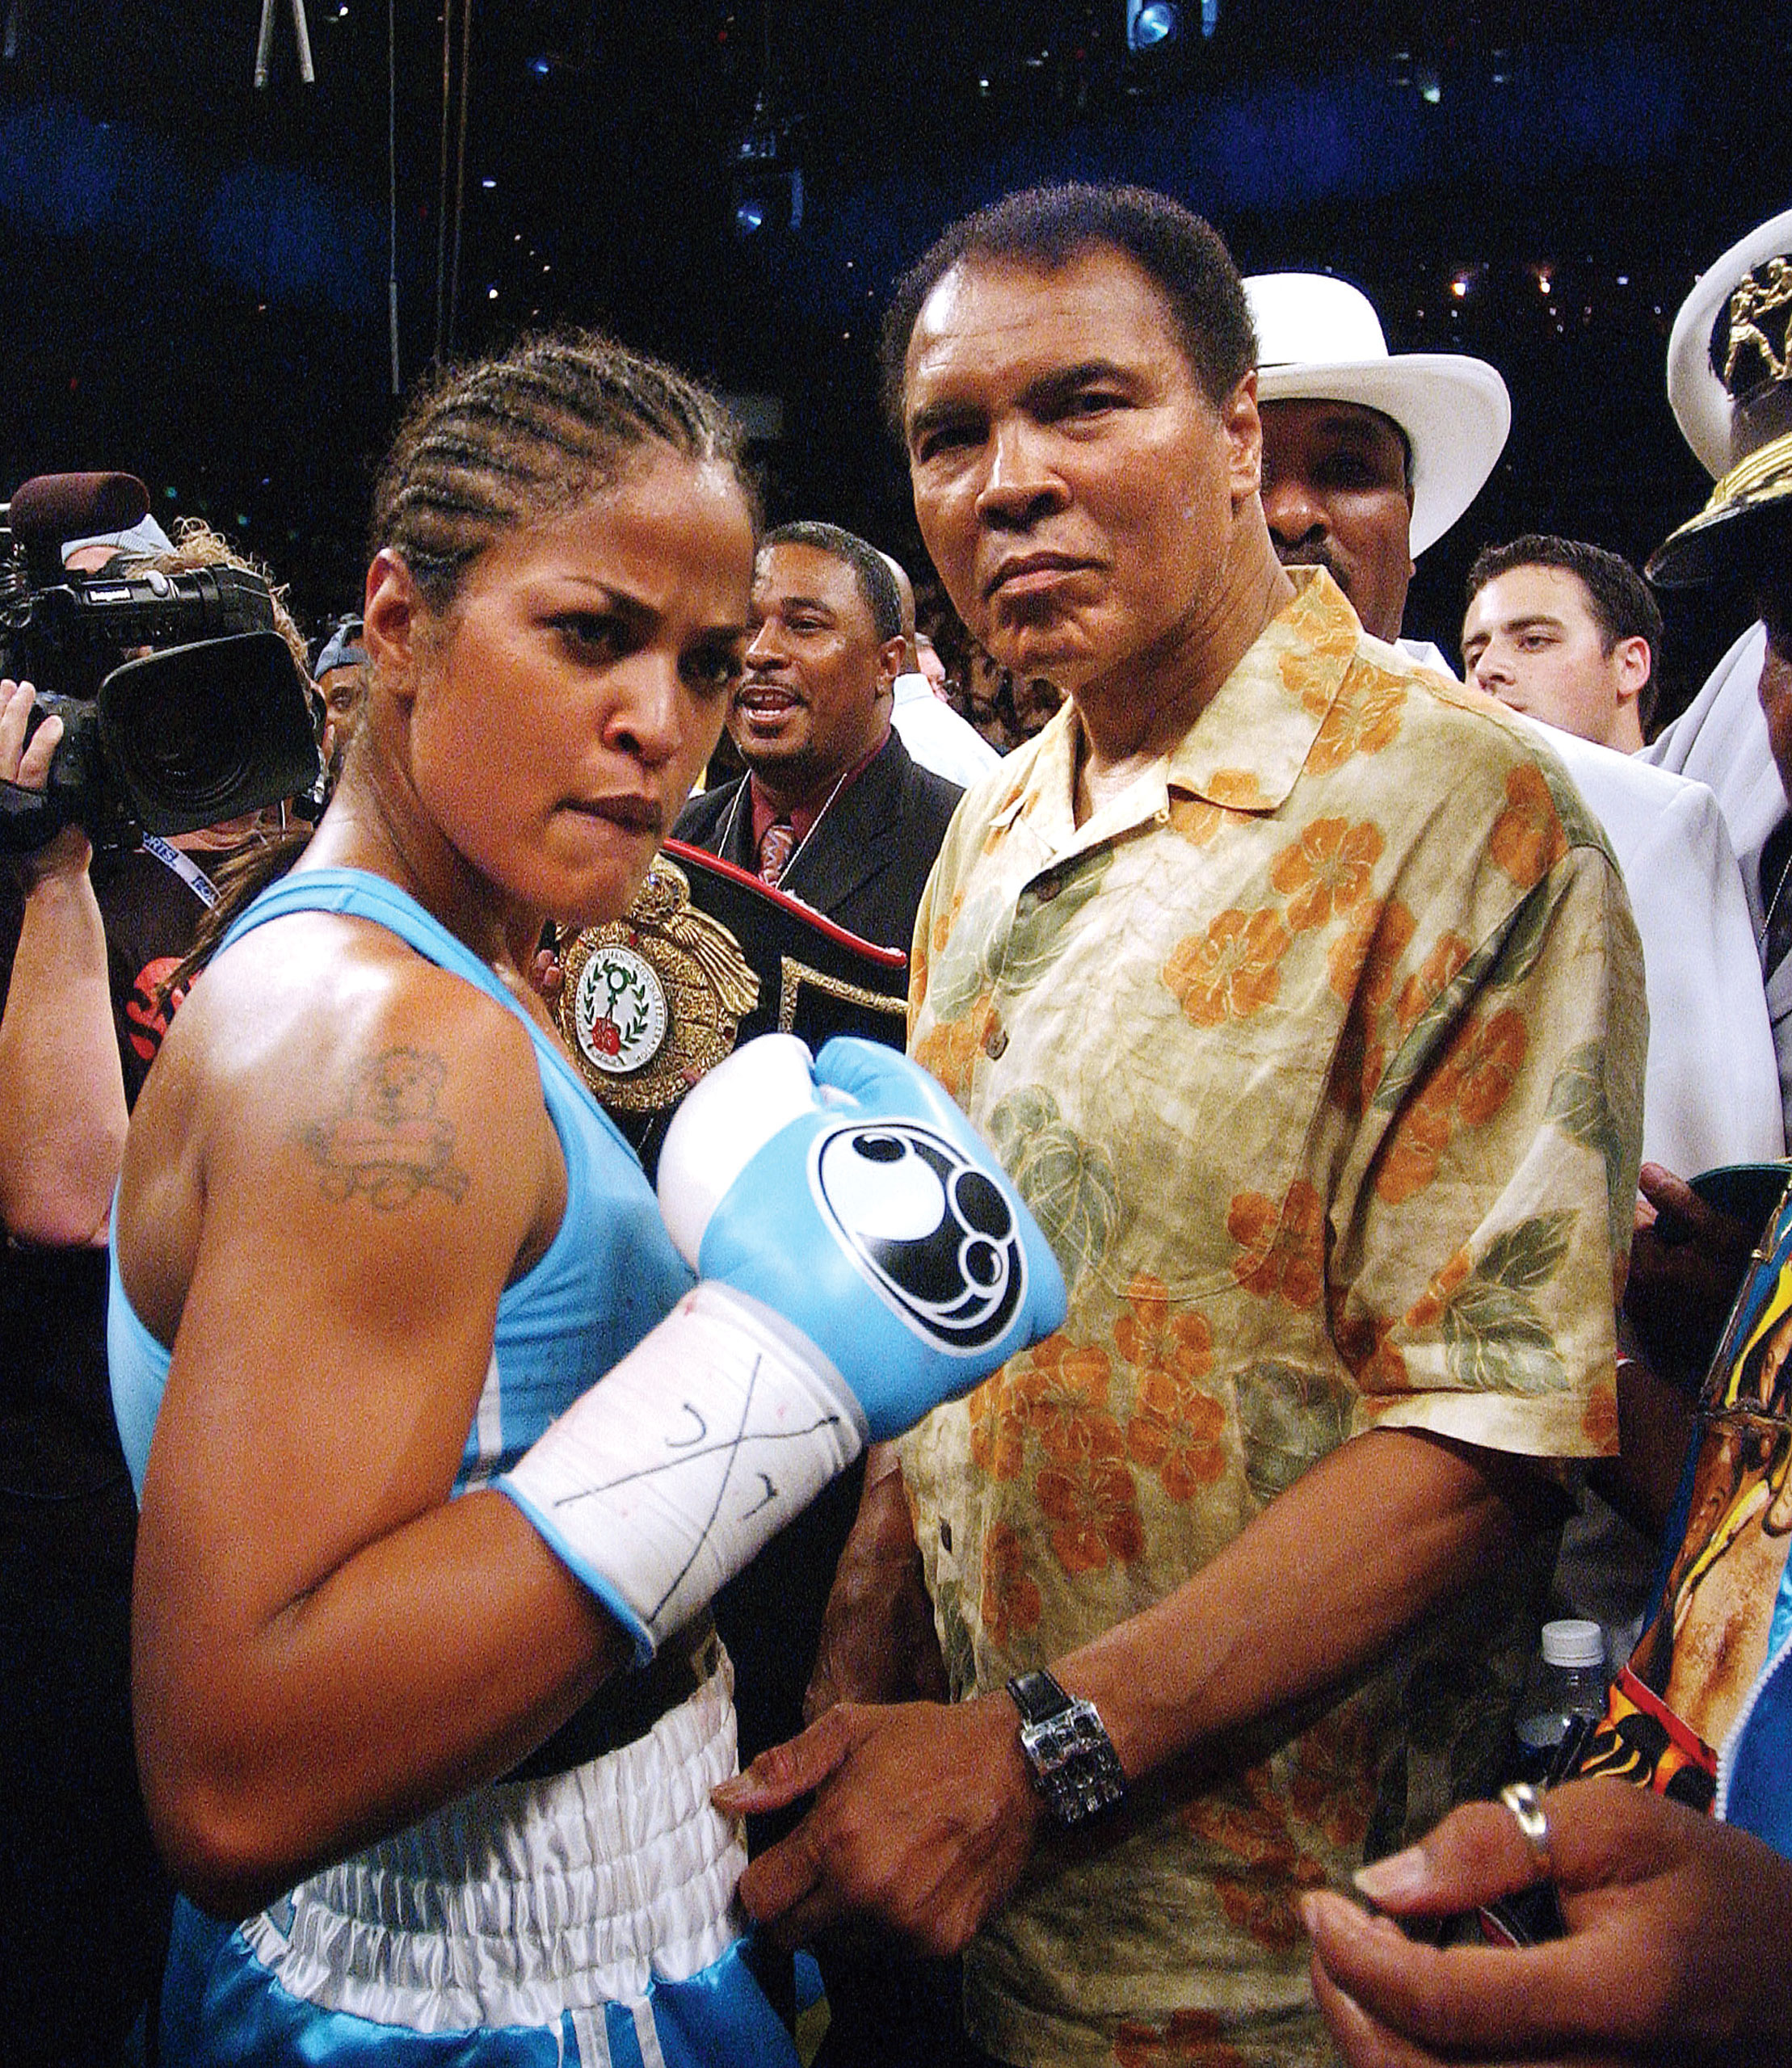 Ali's daughter Laila won the WBC/WIBA Super Middleweight Championship Bout with a 3 round TKO against Erin Toughill in Washington on June 11, 2005.